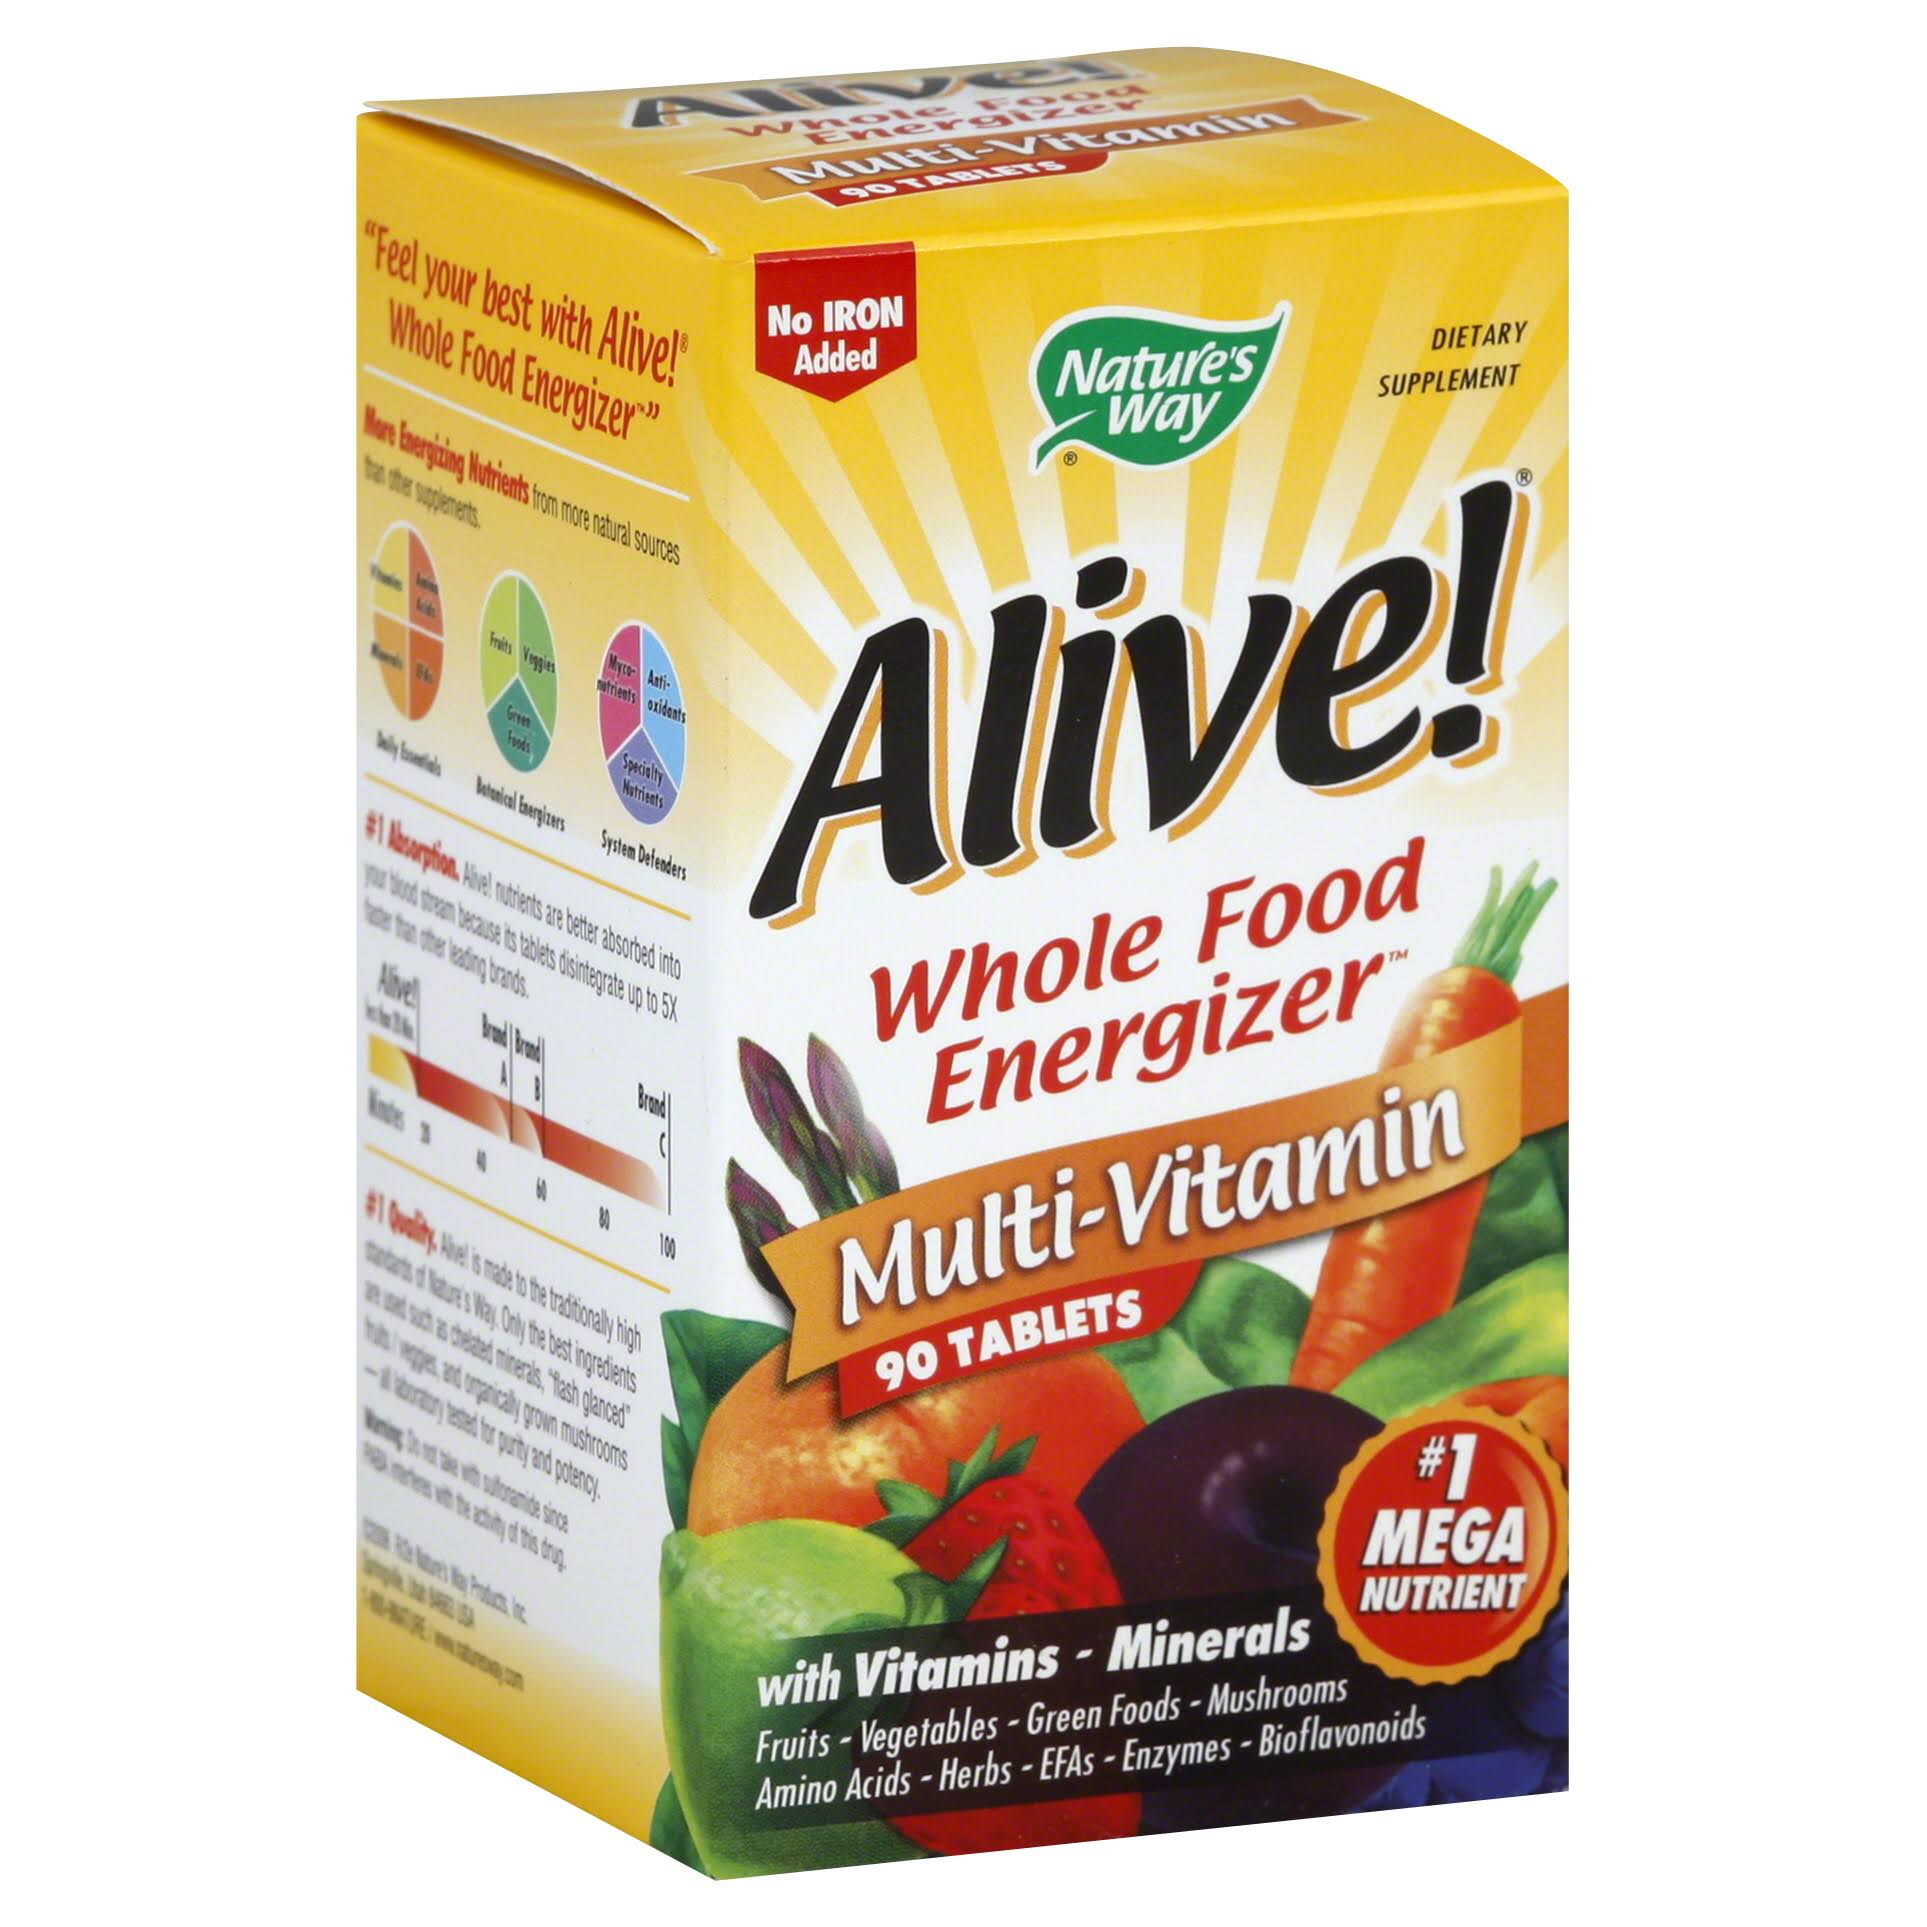 Nature's Way Alive! Max3 Daily Multi-Vitamin - 90 tablets